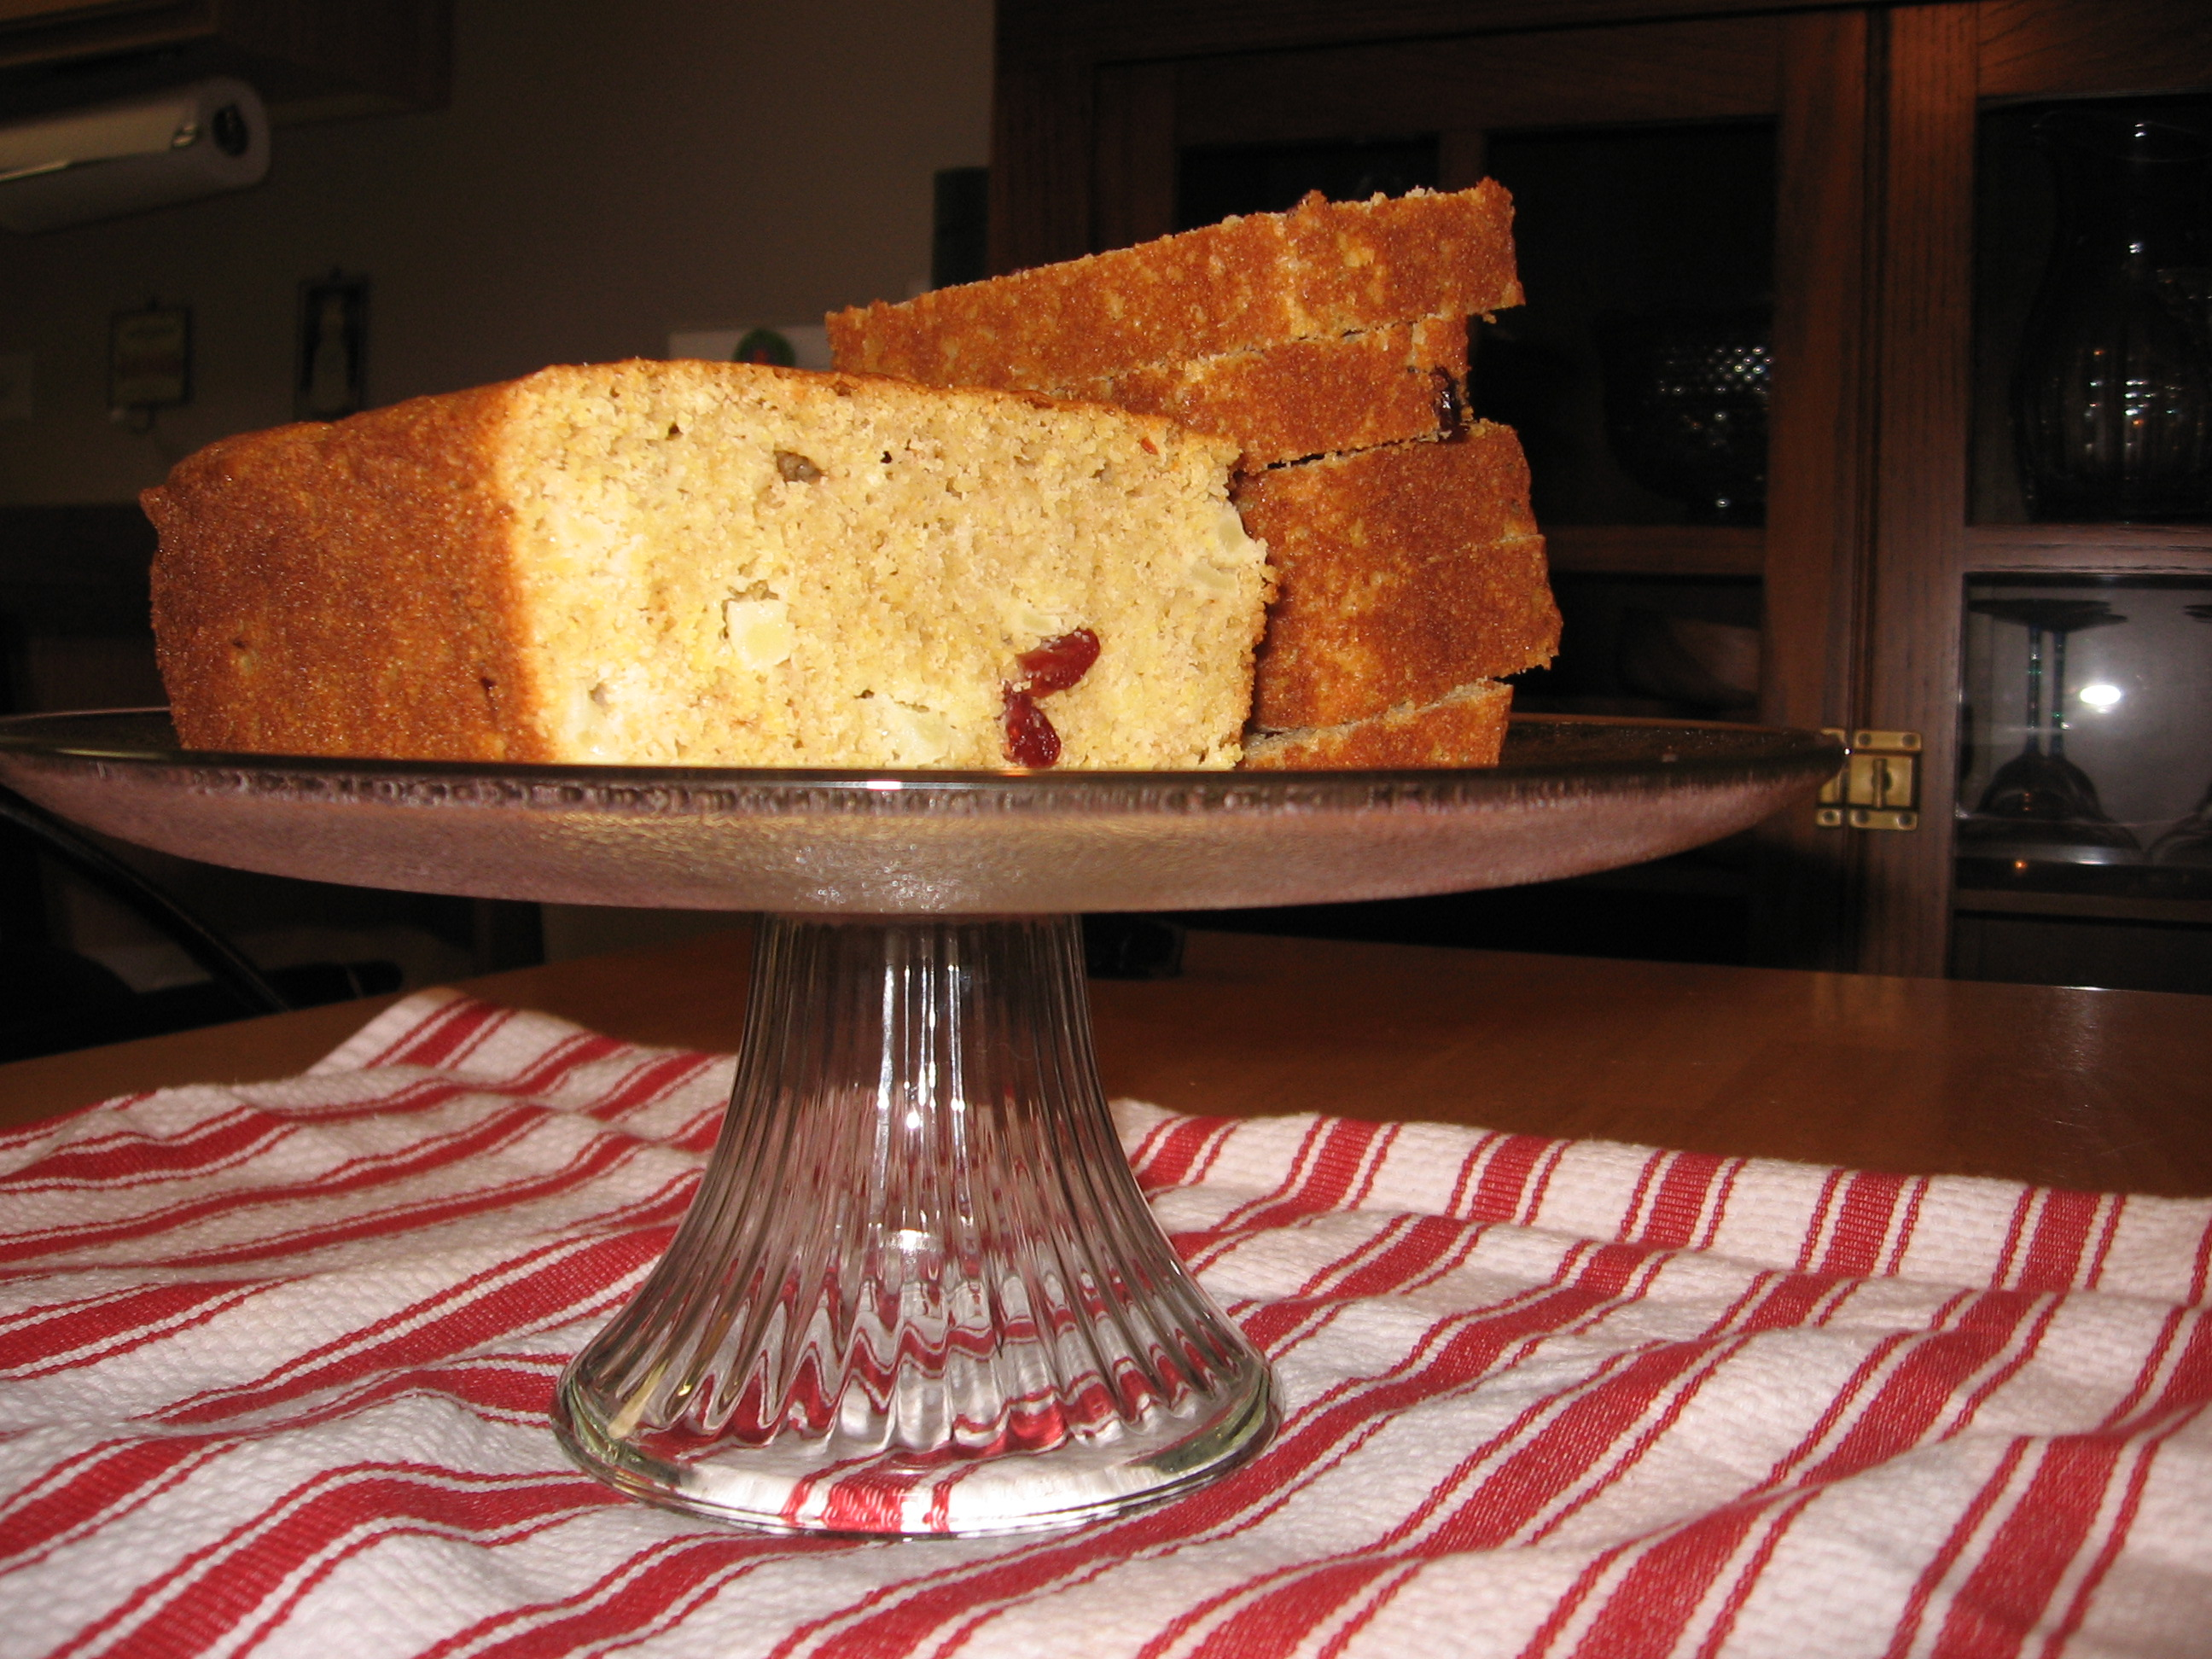 Cornmeal and Fruit Loaf: the Loaf